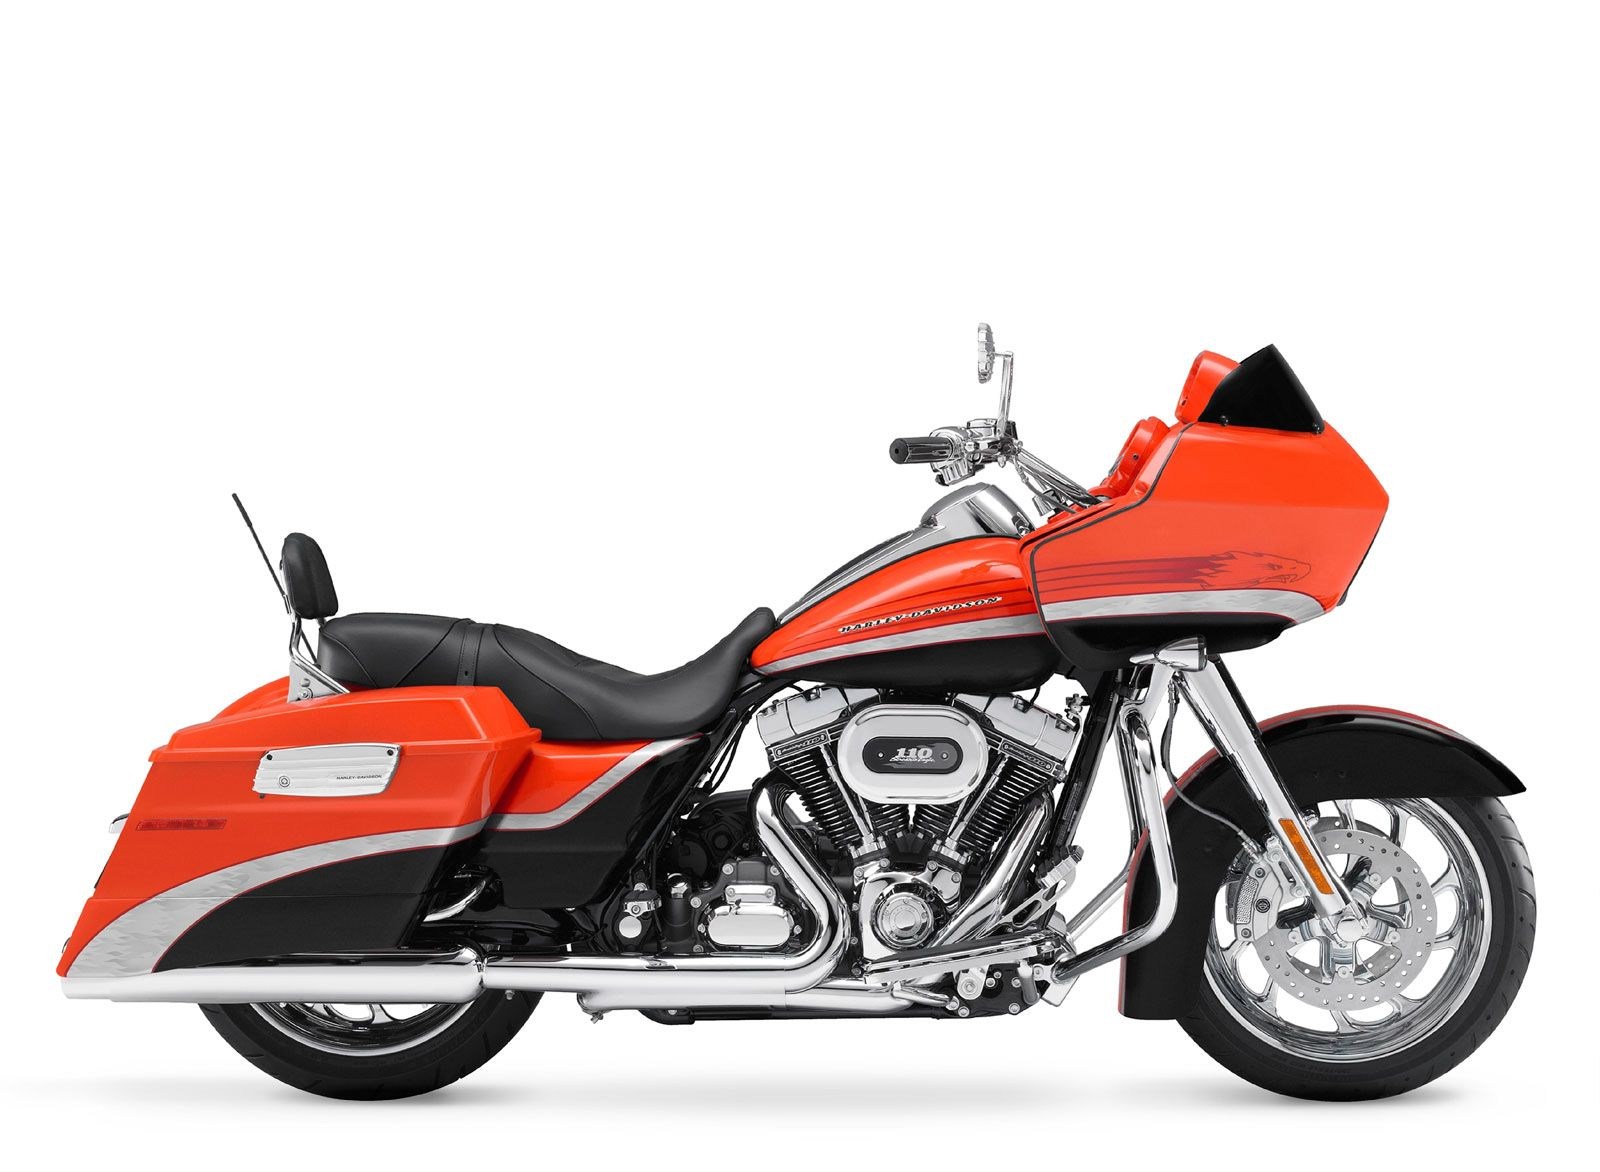 Harley davidson cvo road glide add a detachable tour pack in matching paint and ya got something